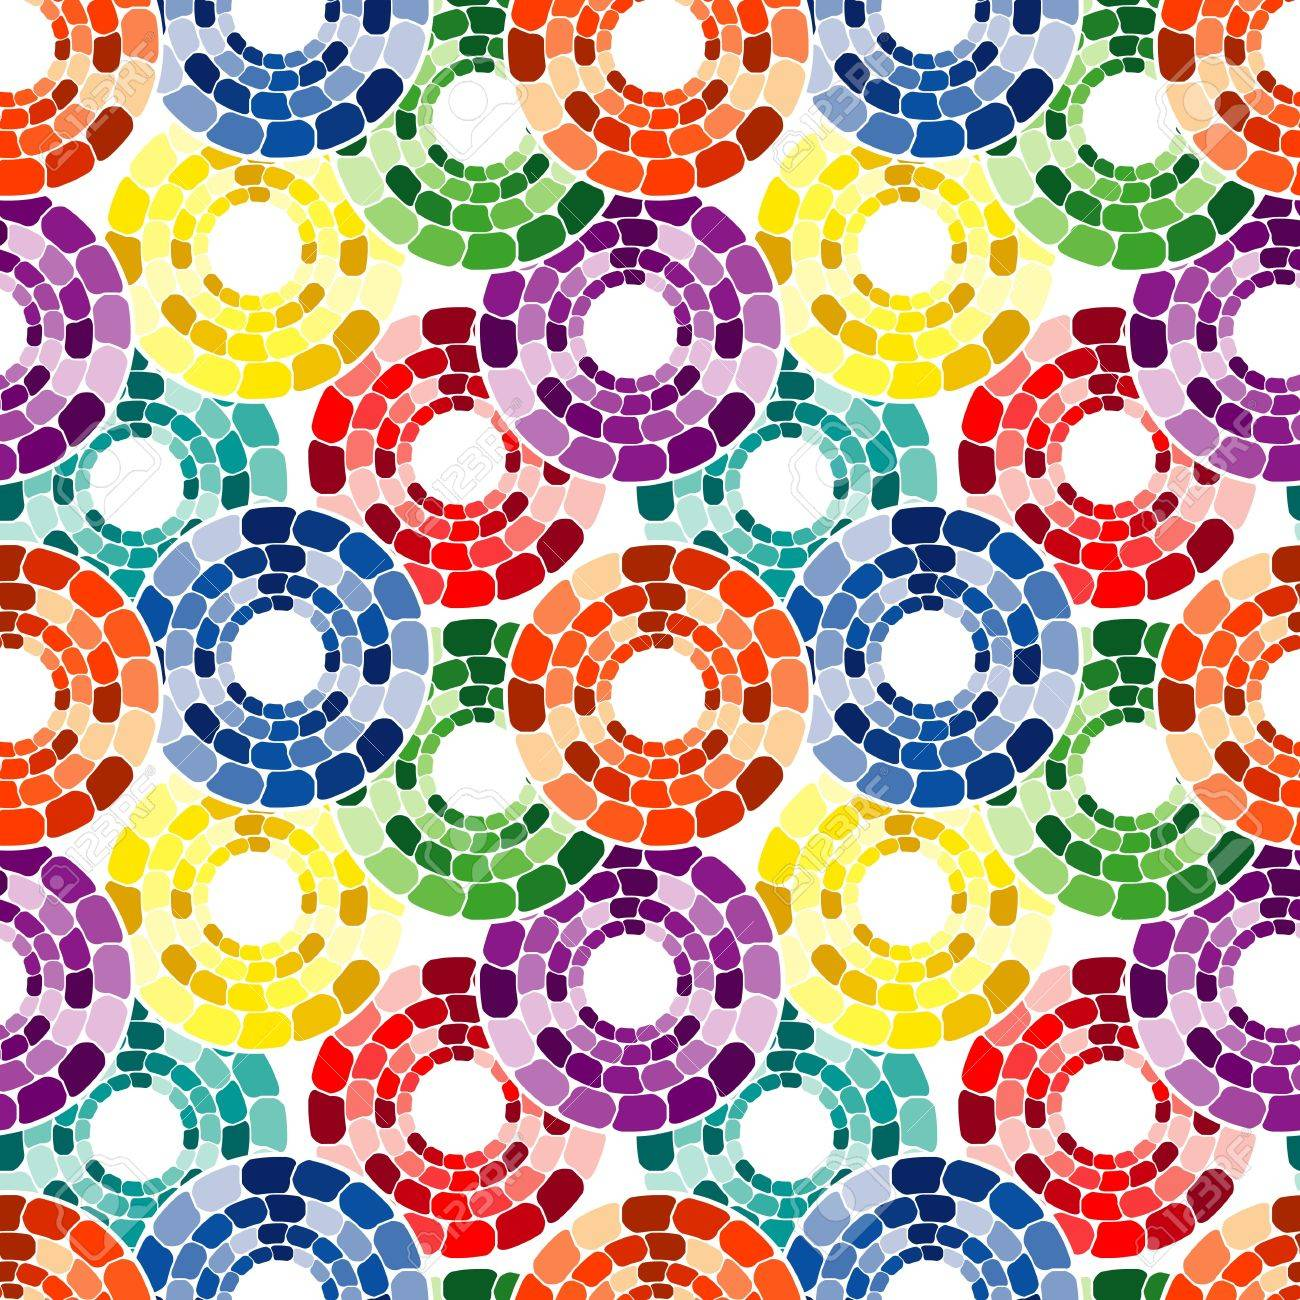 Circle Tiles Seamless Pattern With Multicolor Circle Tiles On White Royalty